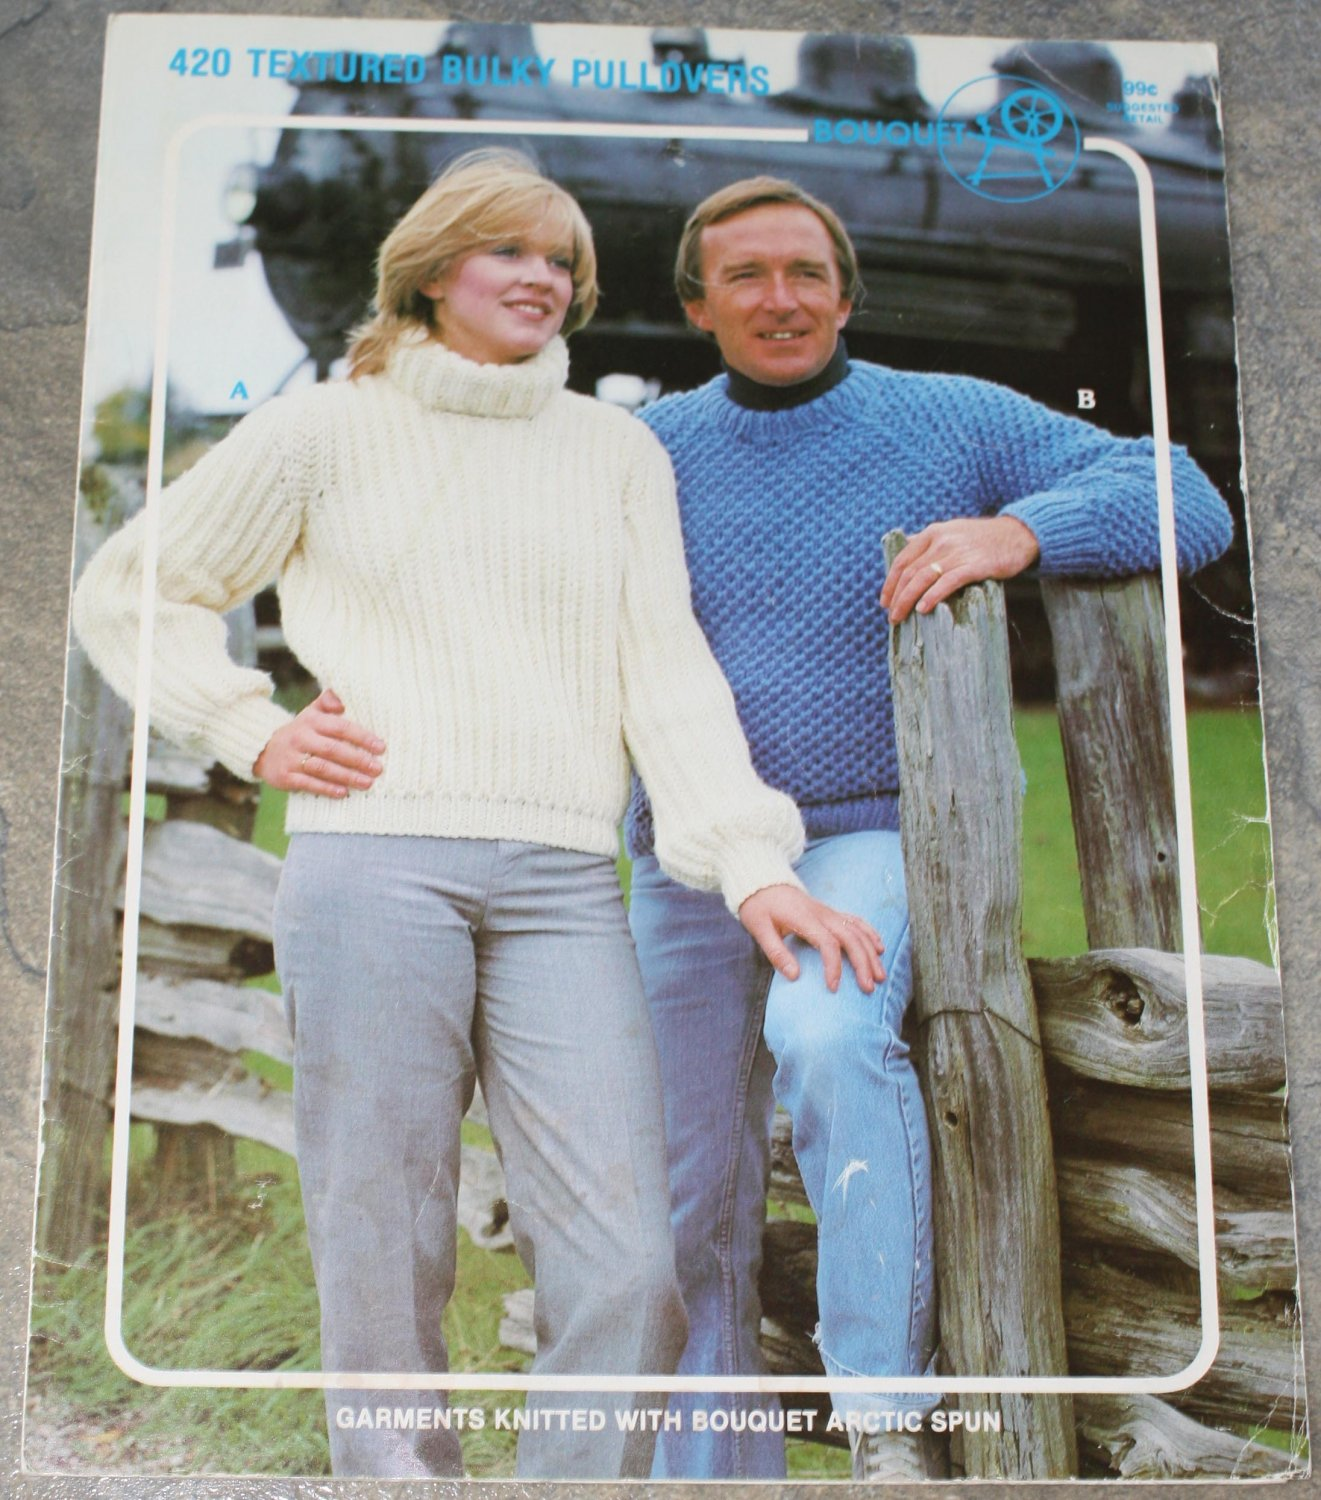 Bouquet Knitting Pattern No.420 Textured Bulky Pullovers